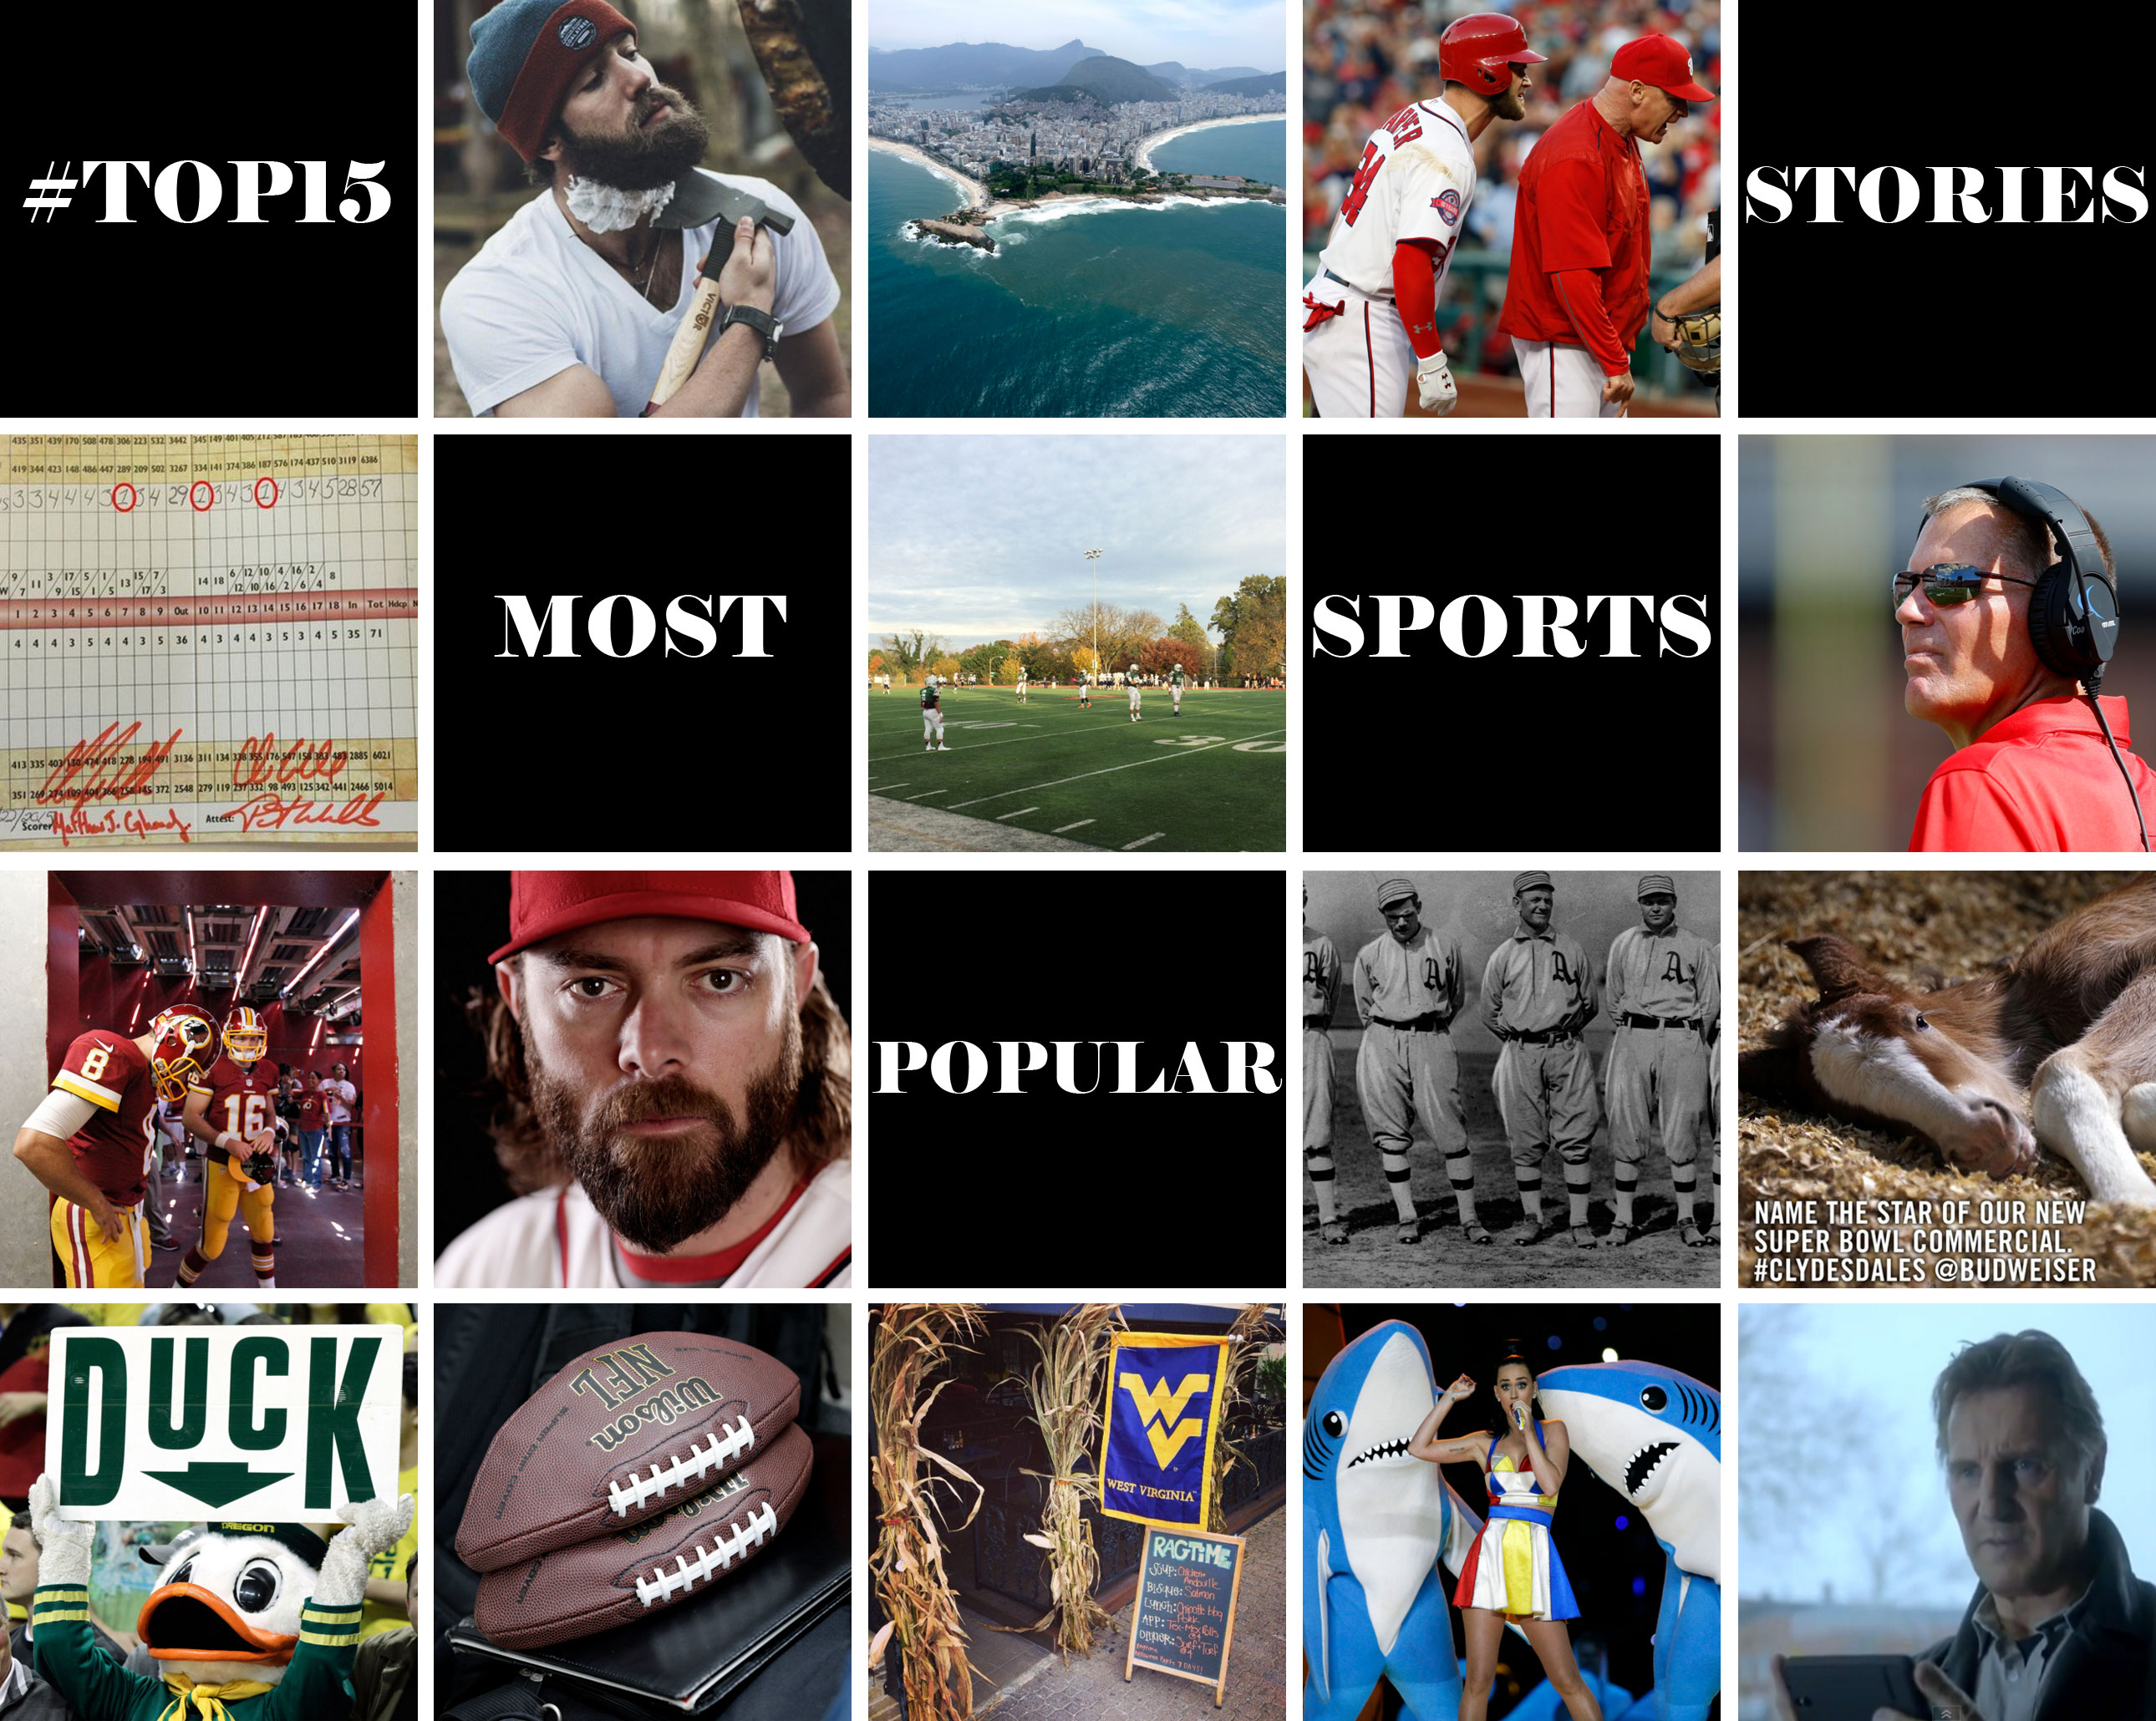 #TOP15 most popular sports stories of 2015